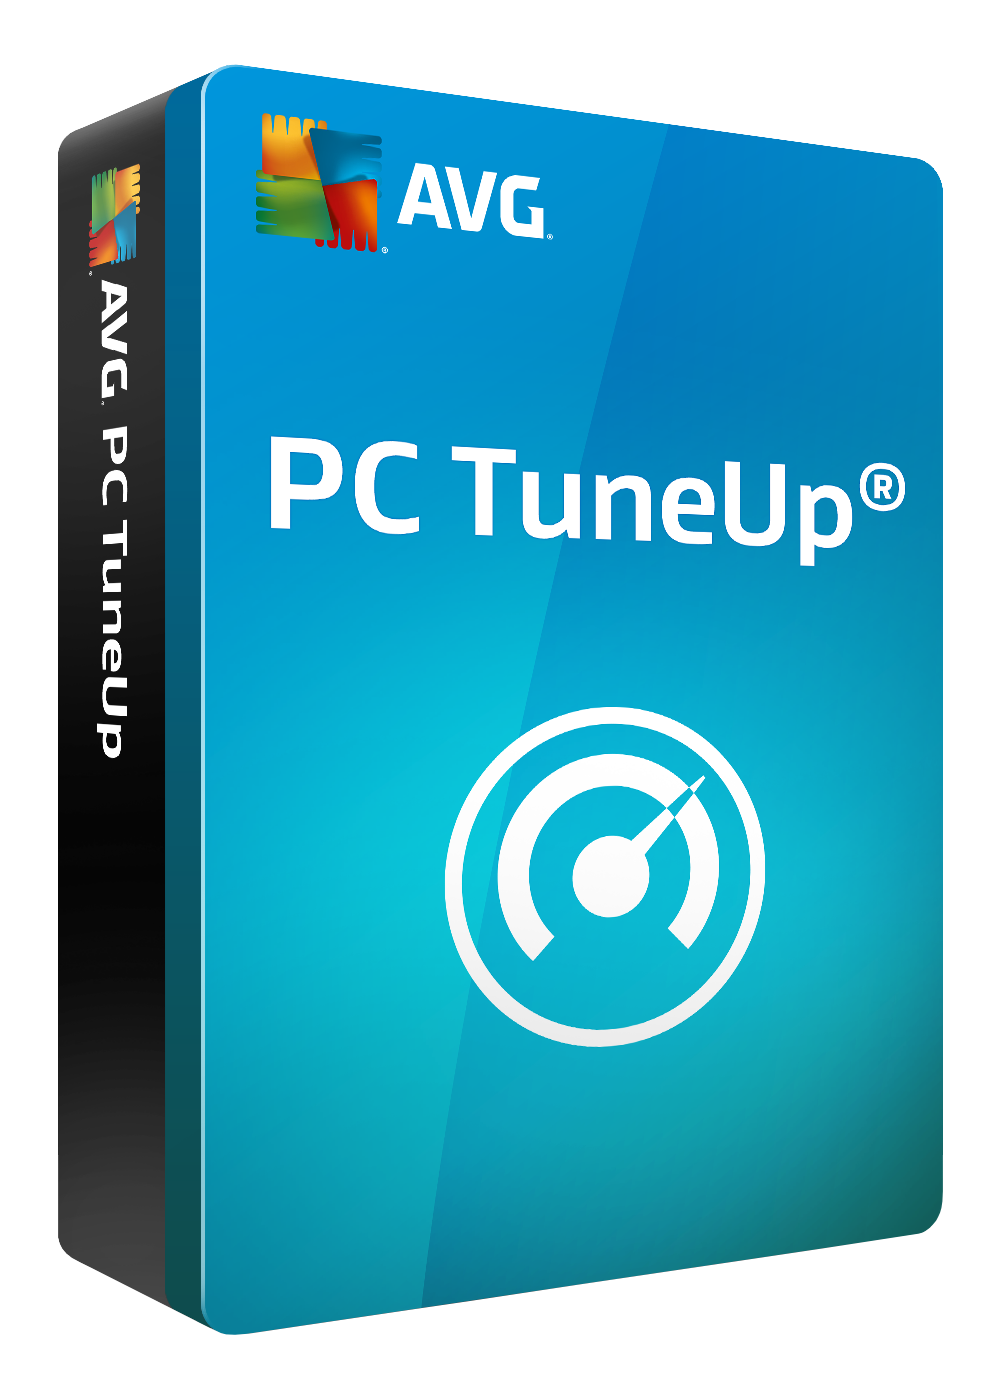 AVG PC Tuneup Crack (Lifetime Activated) Free Download till 2050